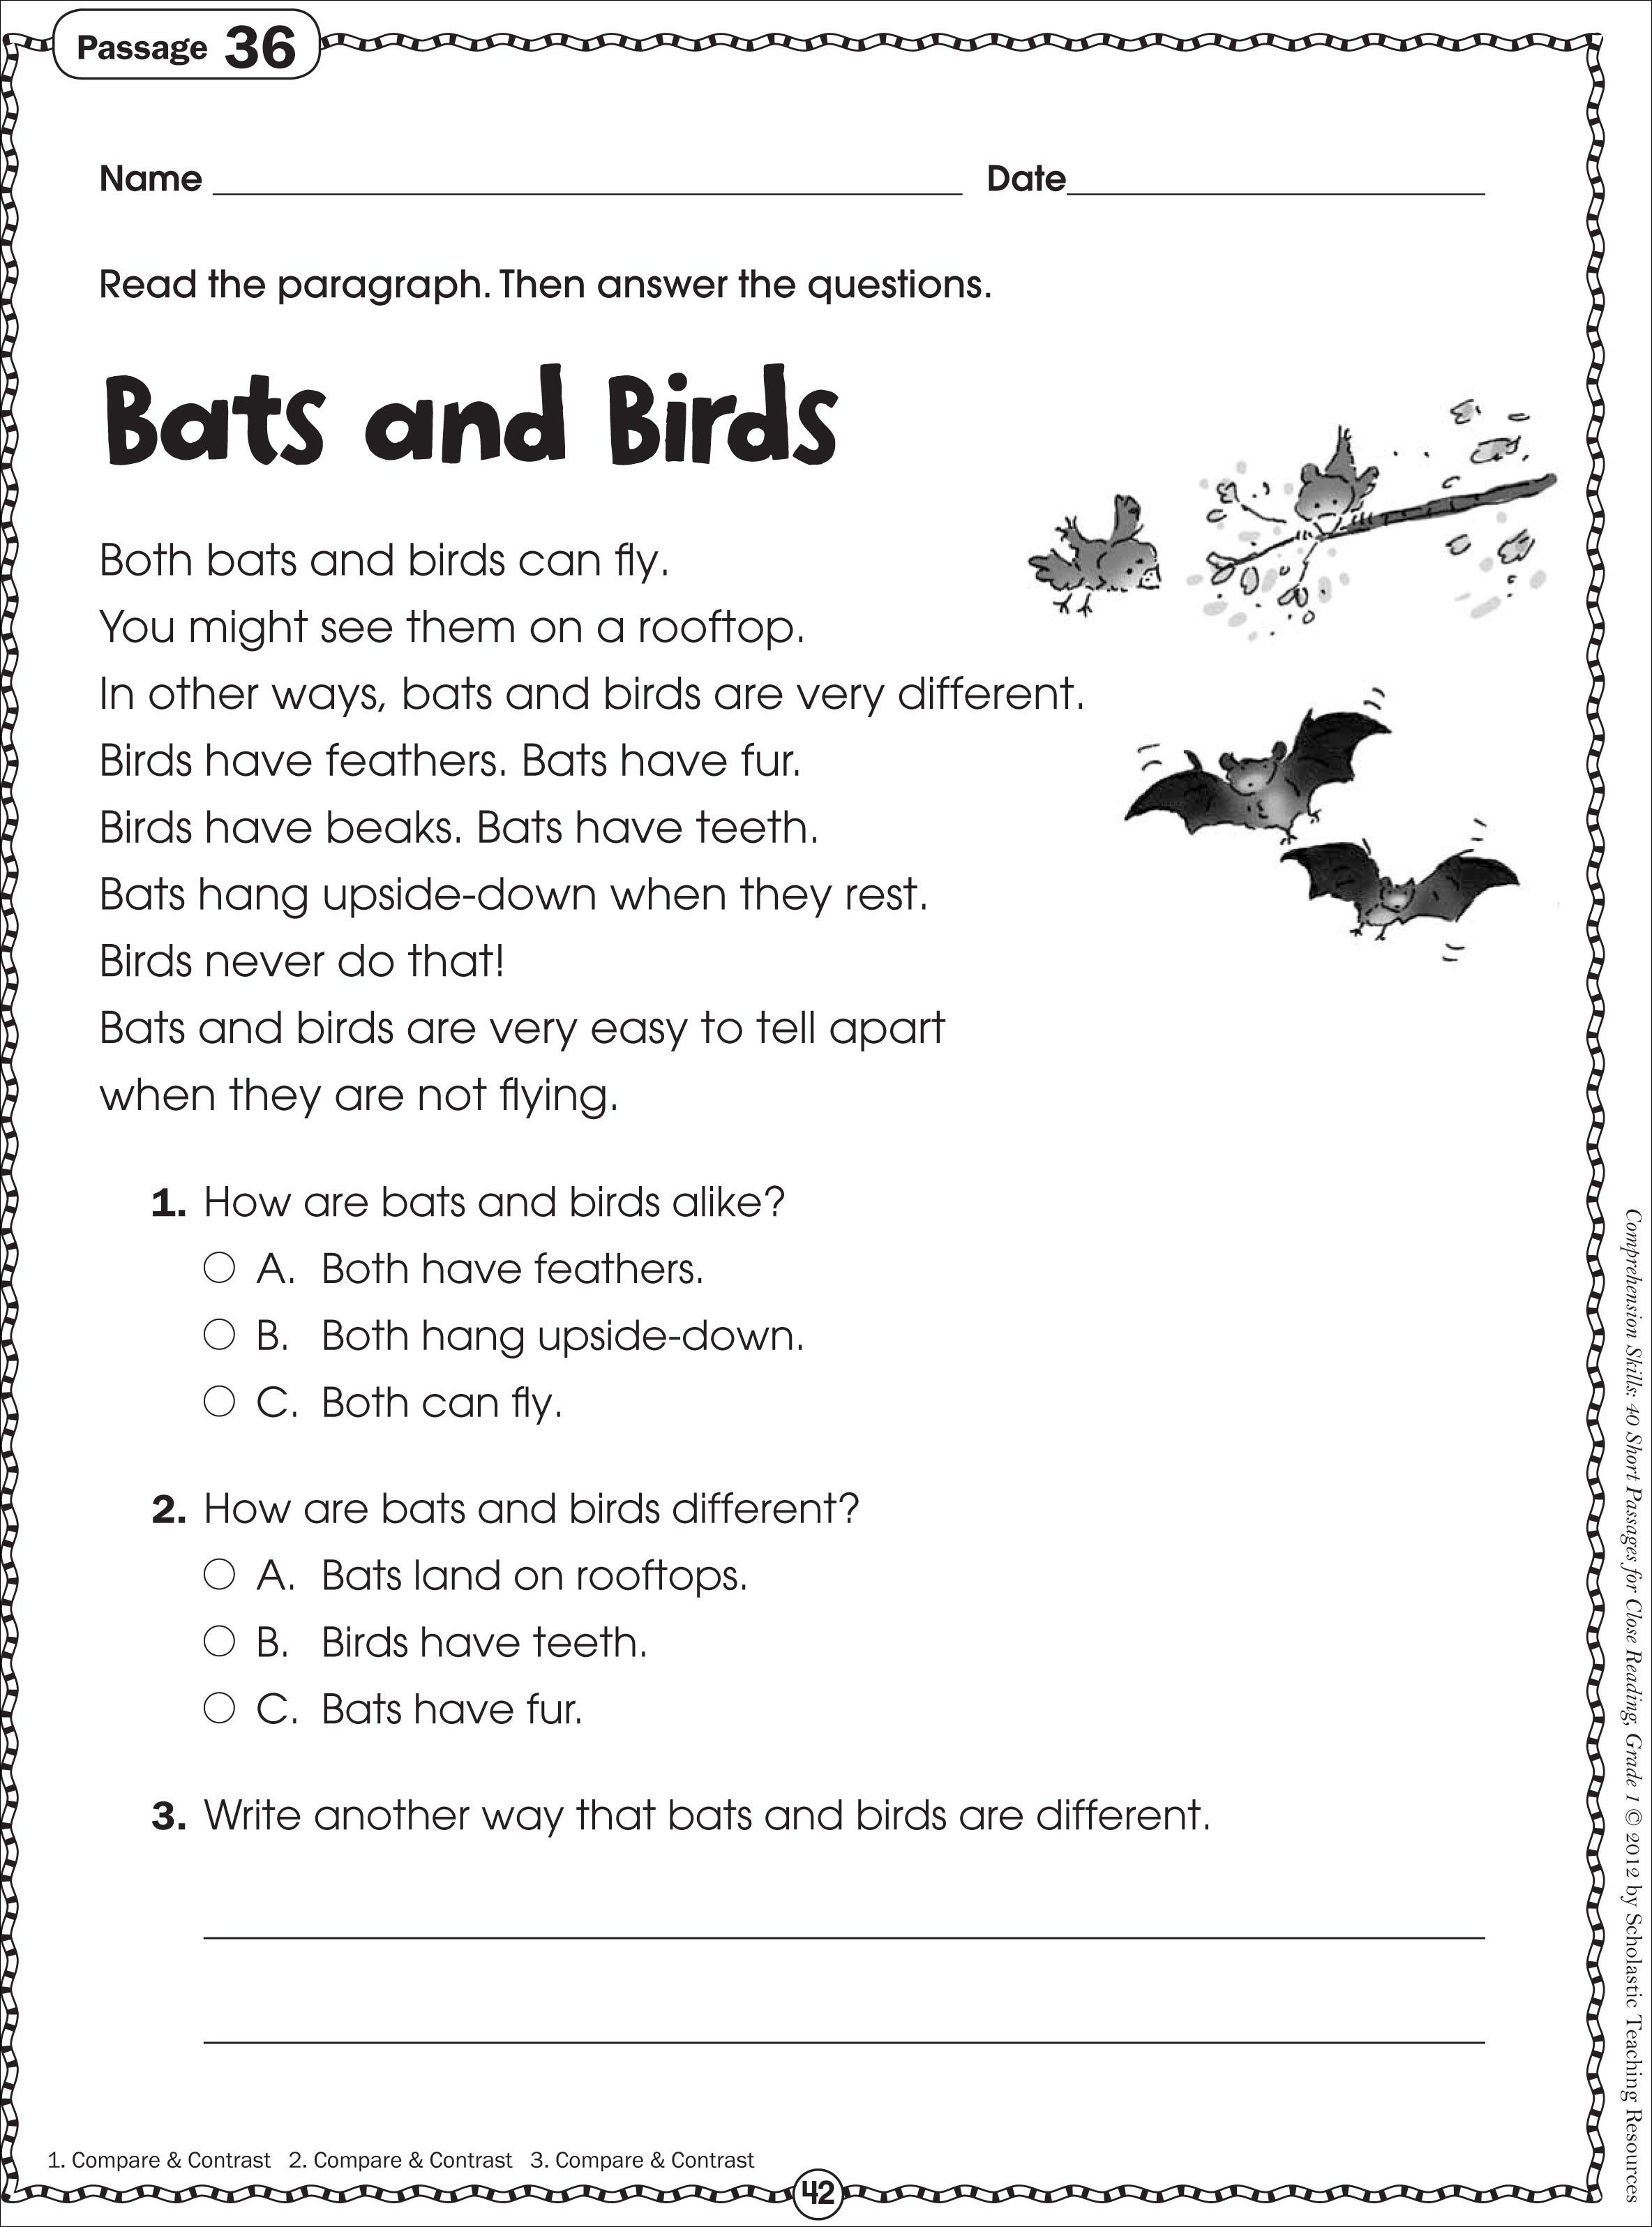 Free Printable Reading Comprehension Worksheets For Kindergarten | Free Printable Comprehension Worksheets For Grade 5